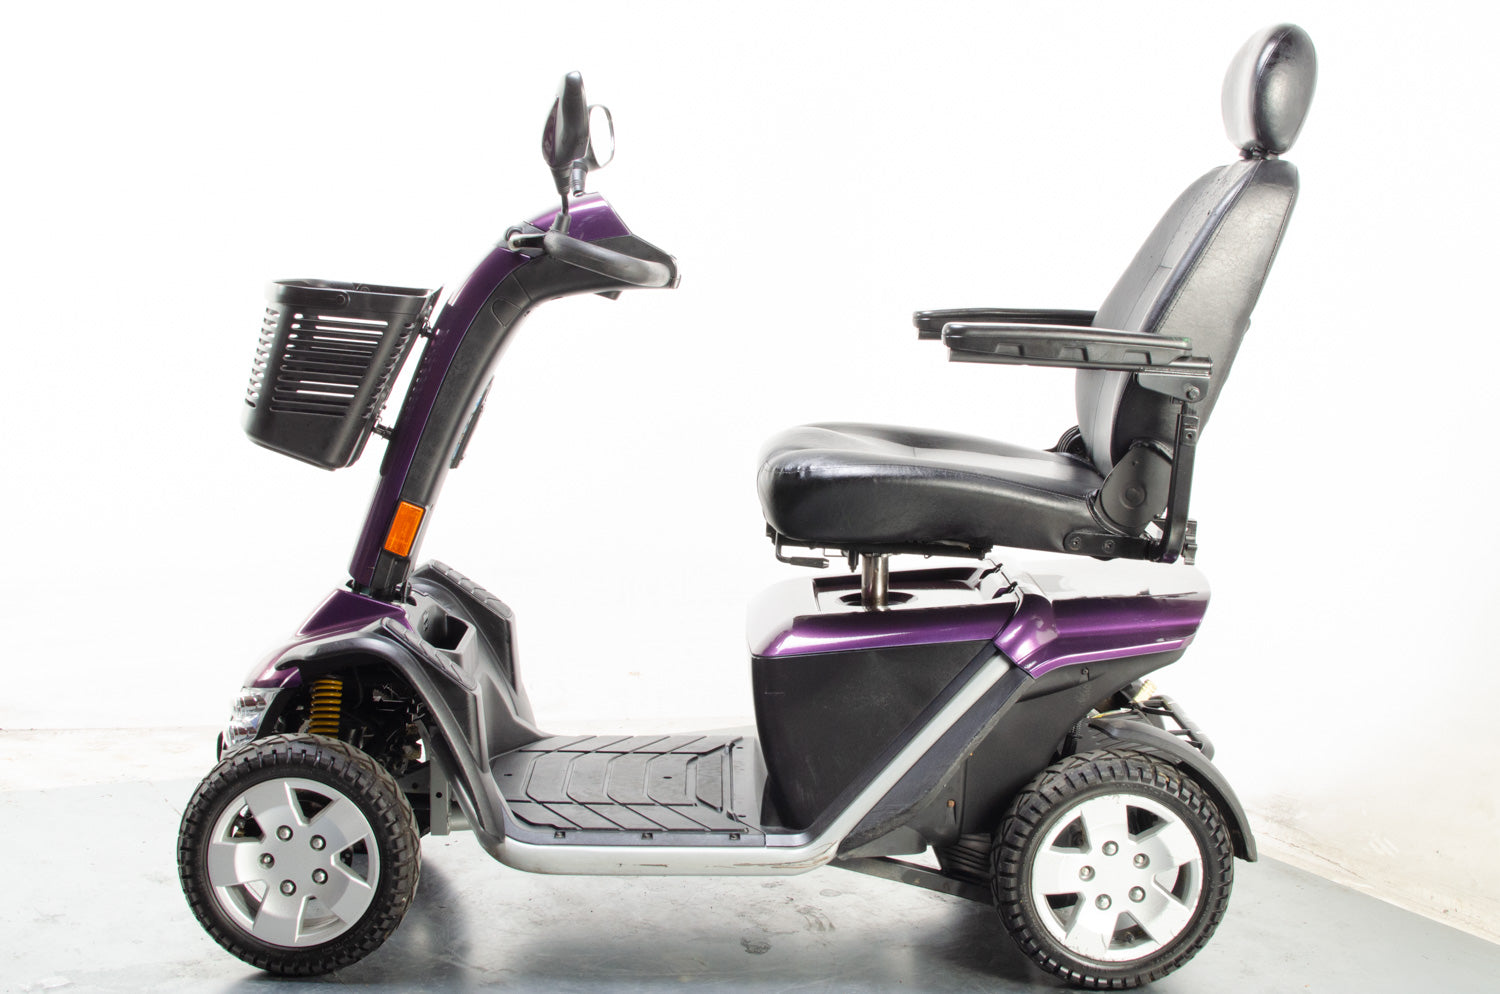 2016 Pride Colt Executive 8mph Large Off Road Mobility Scooter Purple Pearl